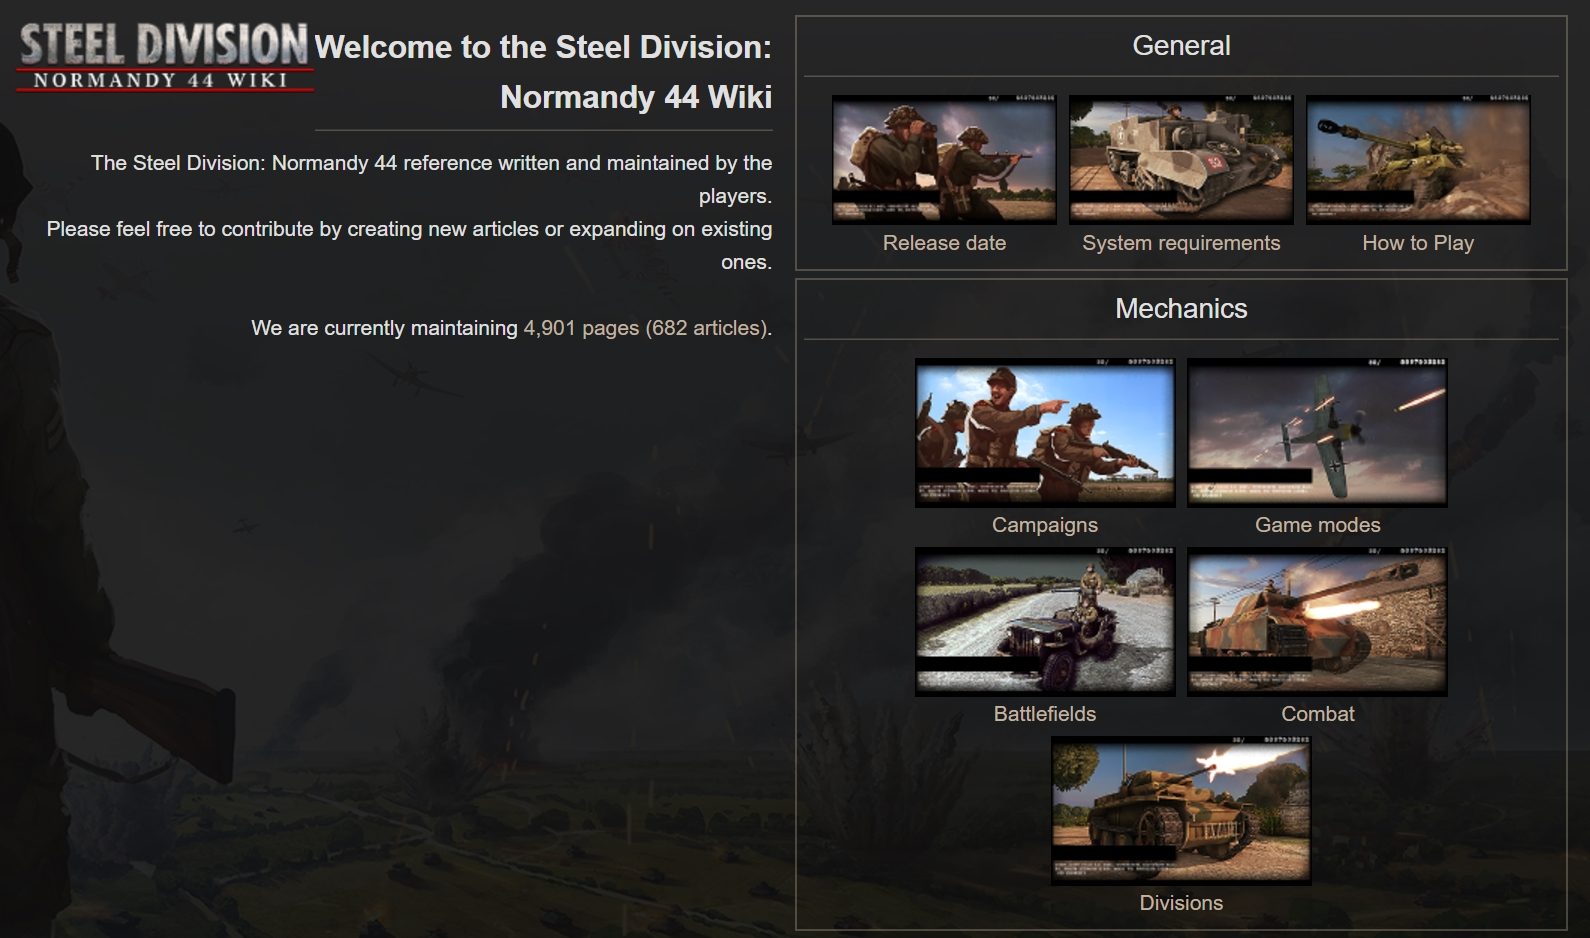 Steel Division: Normandy 44 Wiki